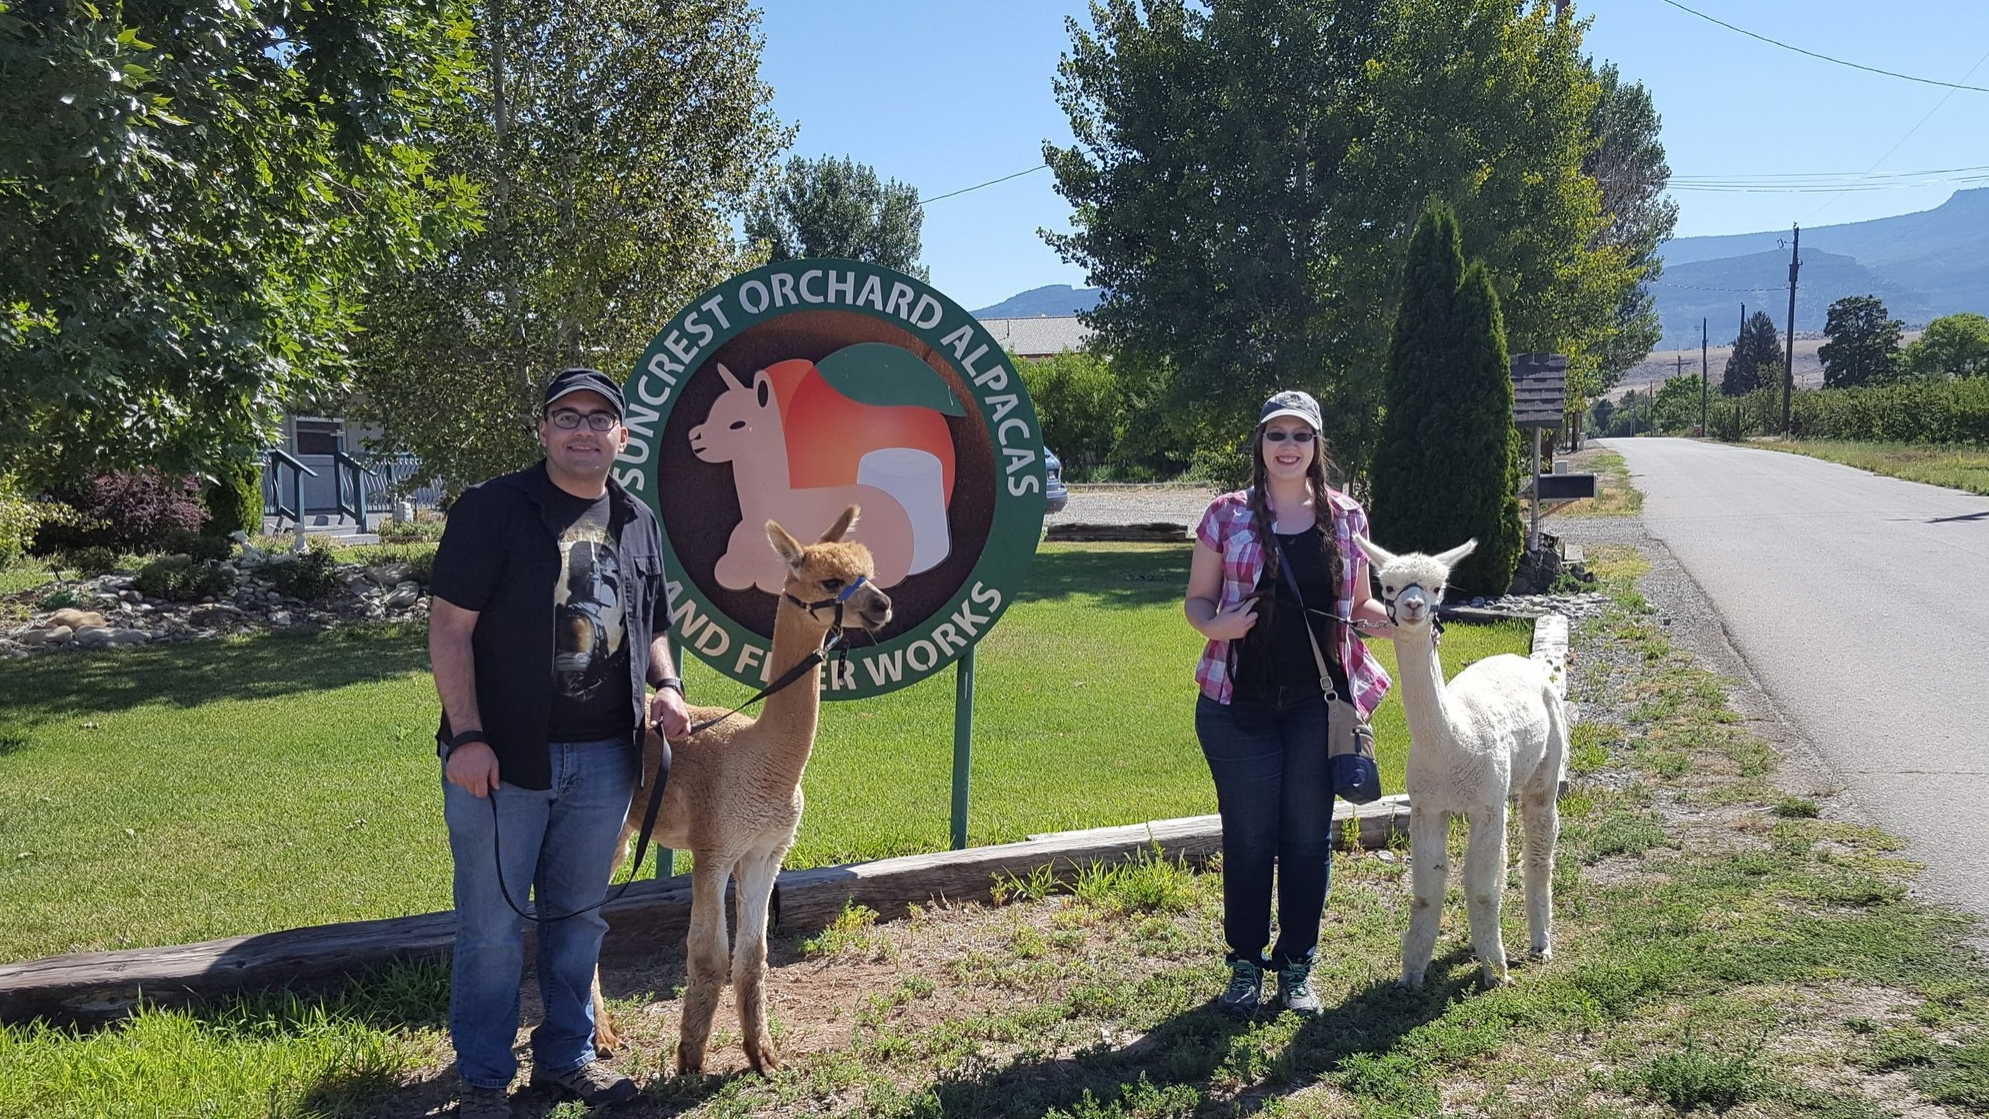 FROM LEFT TO RIGHT:  Jason Rivera, Owner of DARK MOUSE DESIGNS, LLC; Sweet adorable friendly alpaca; Echo Rivera, Owner of CREATIVE RESEARCH COMMUNICATIONS, LLC; Grumpy but still adorable alpaca.